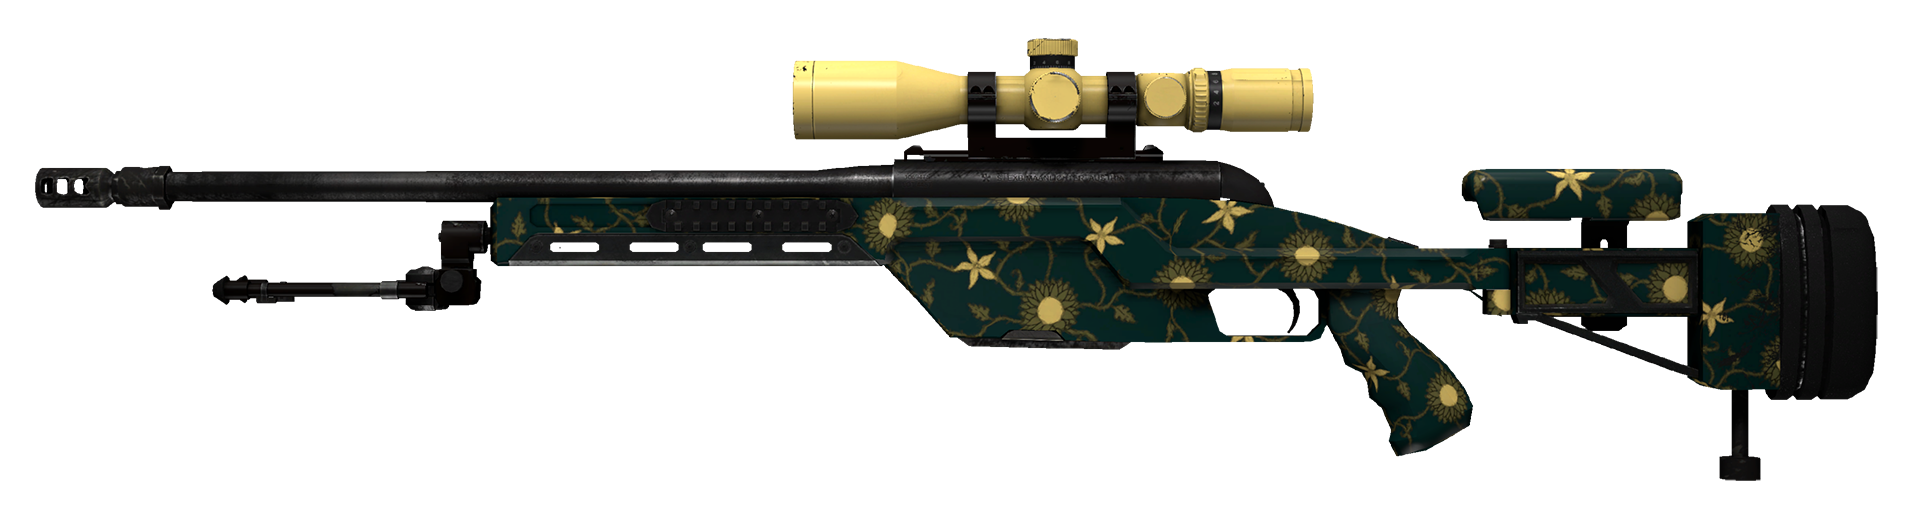 SSG 08 Sea Calico Large Rendering